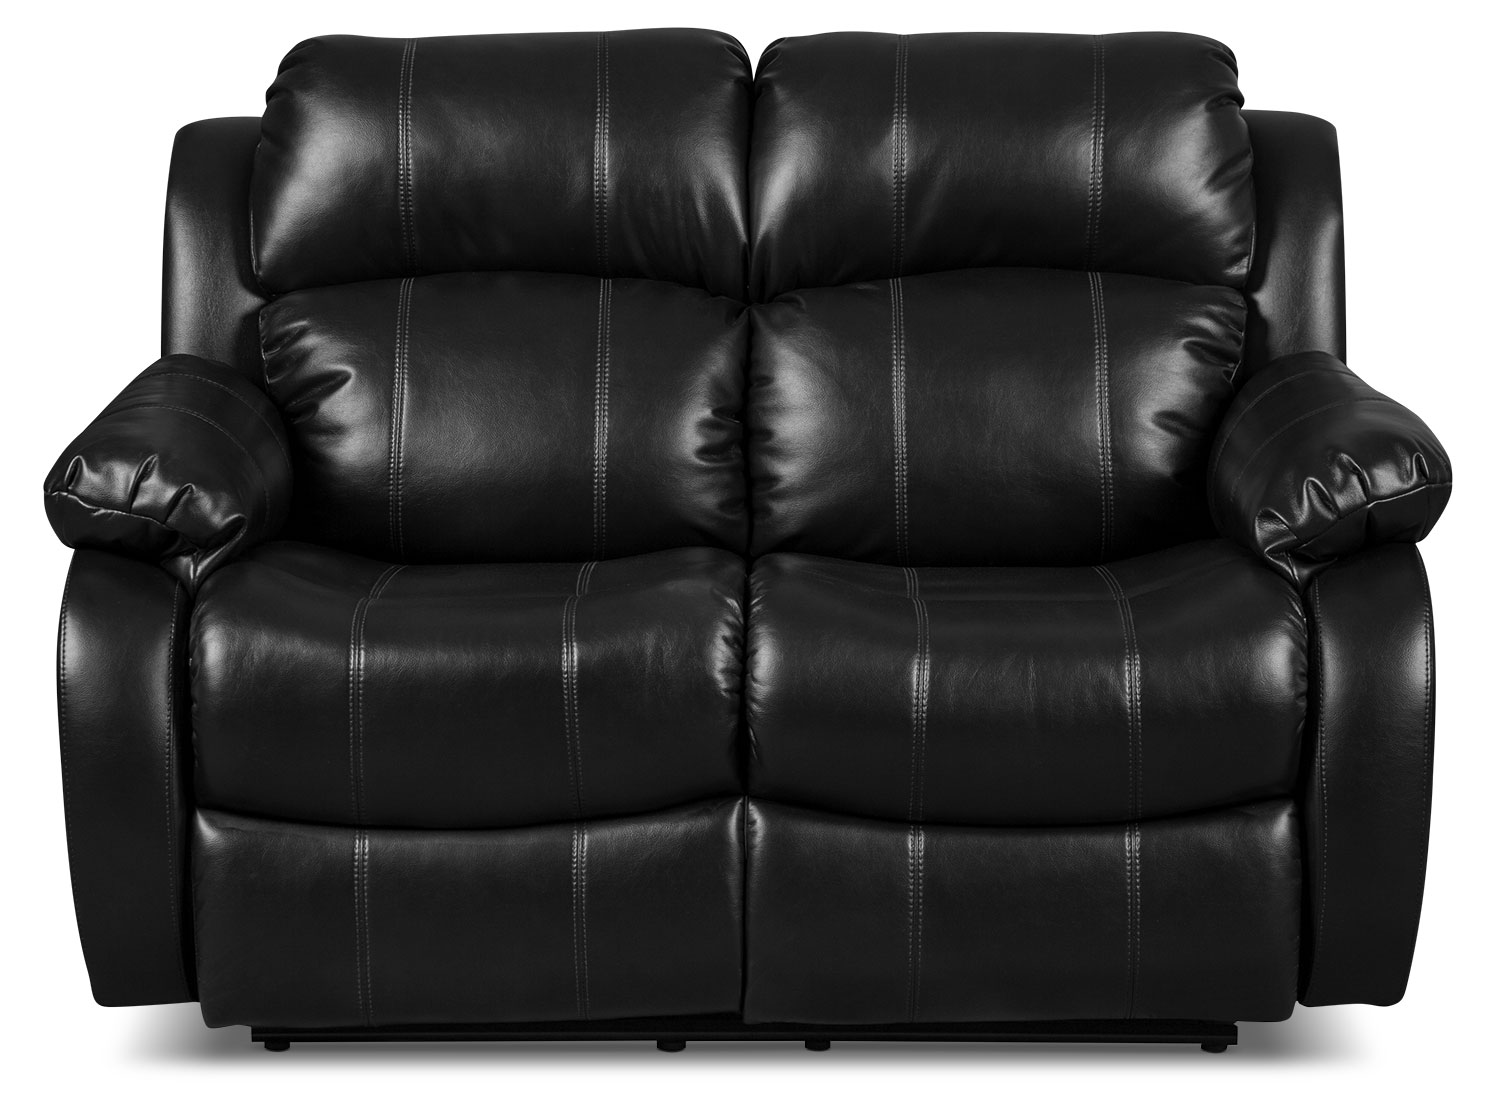 Omega 3 Leather-Look Fabric Reclining Loveseat – Black